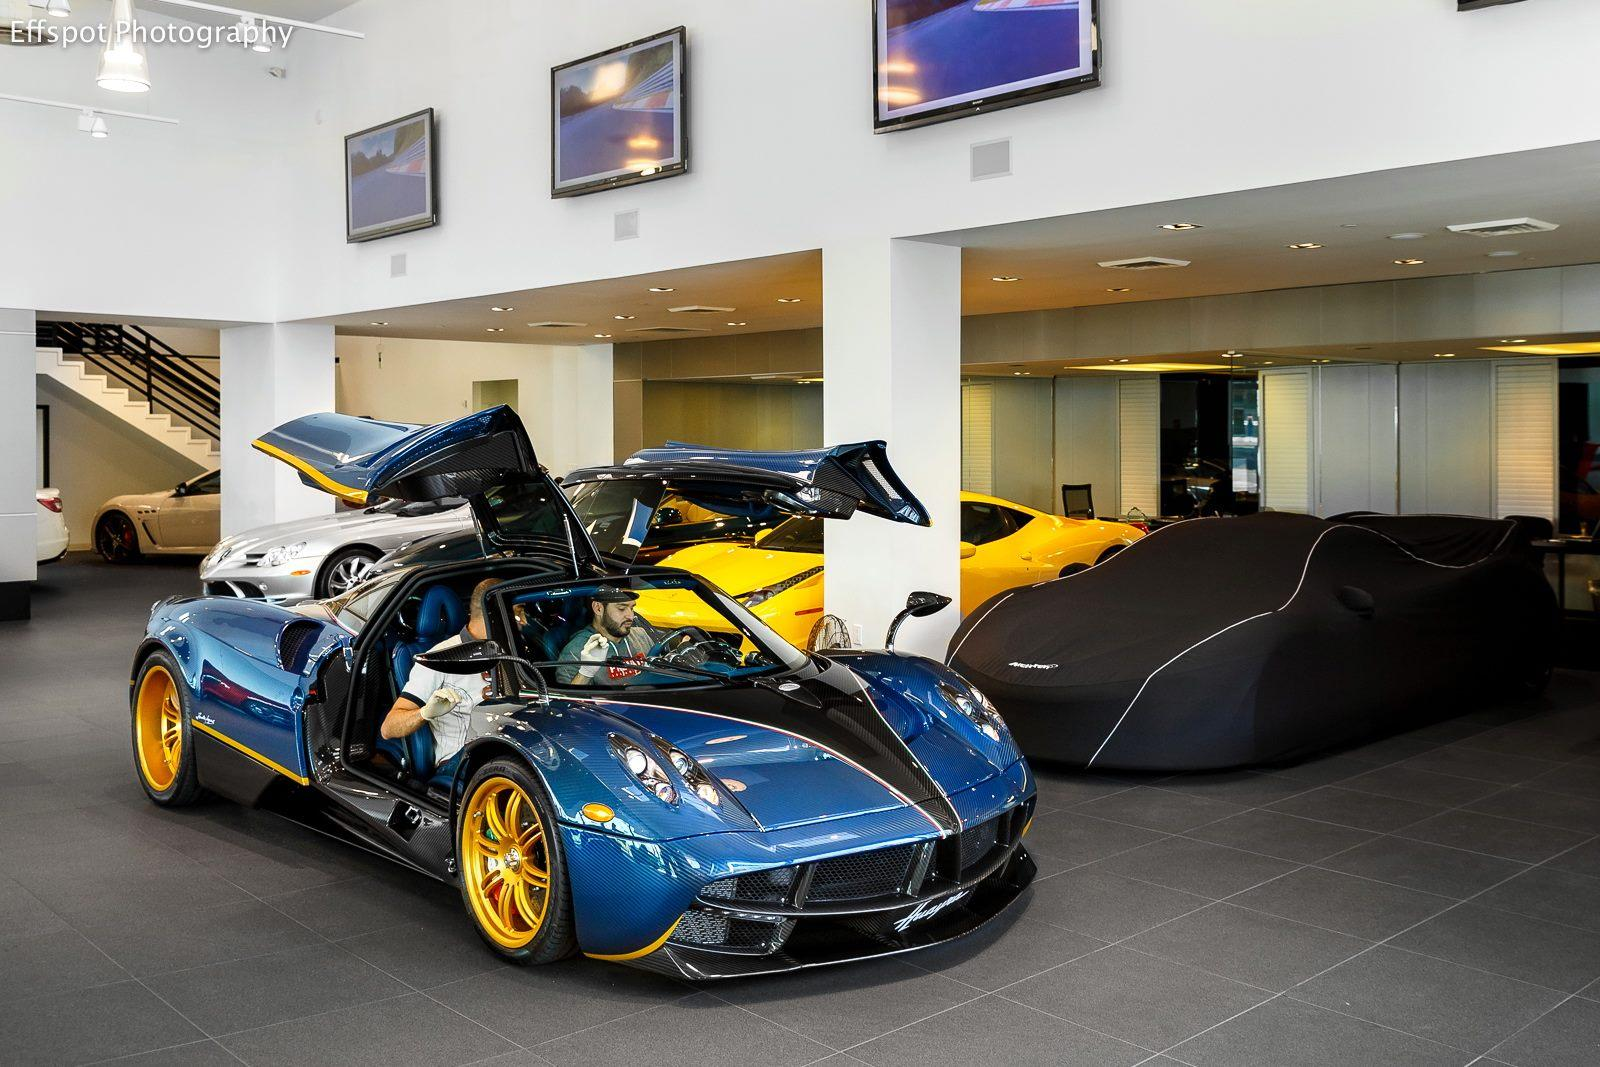 One Off Pagani Huayra 730 S Reached The States And It Shines There